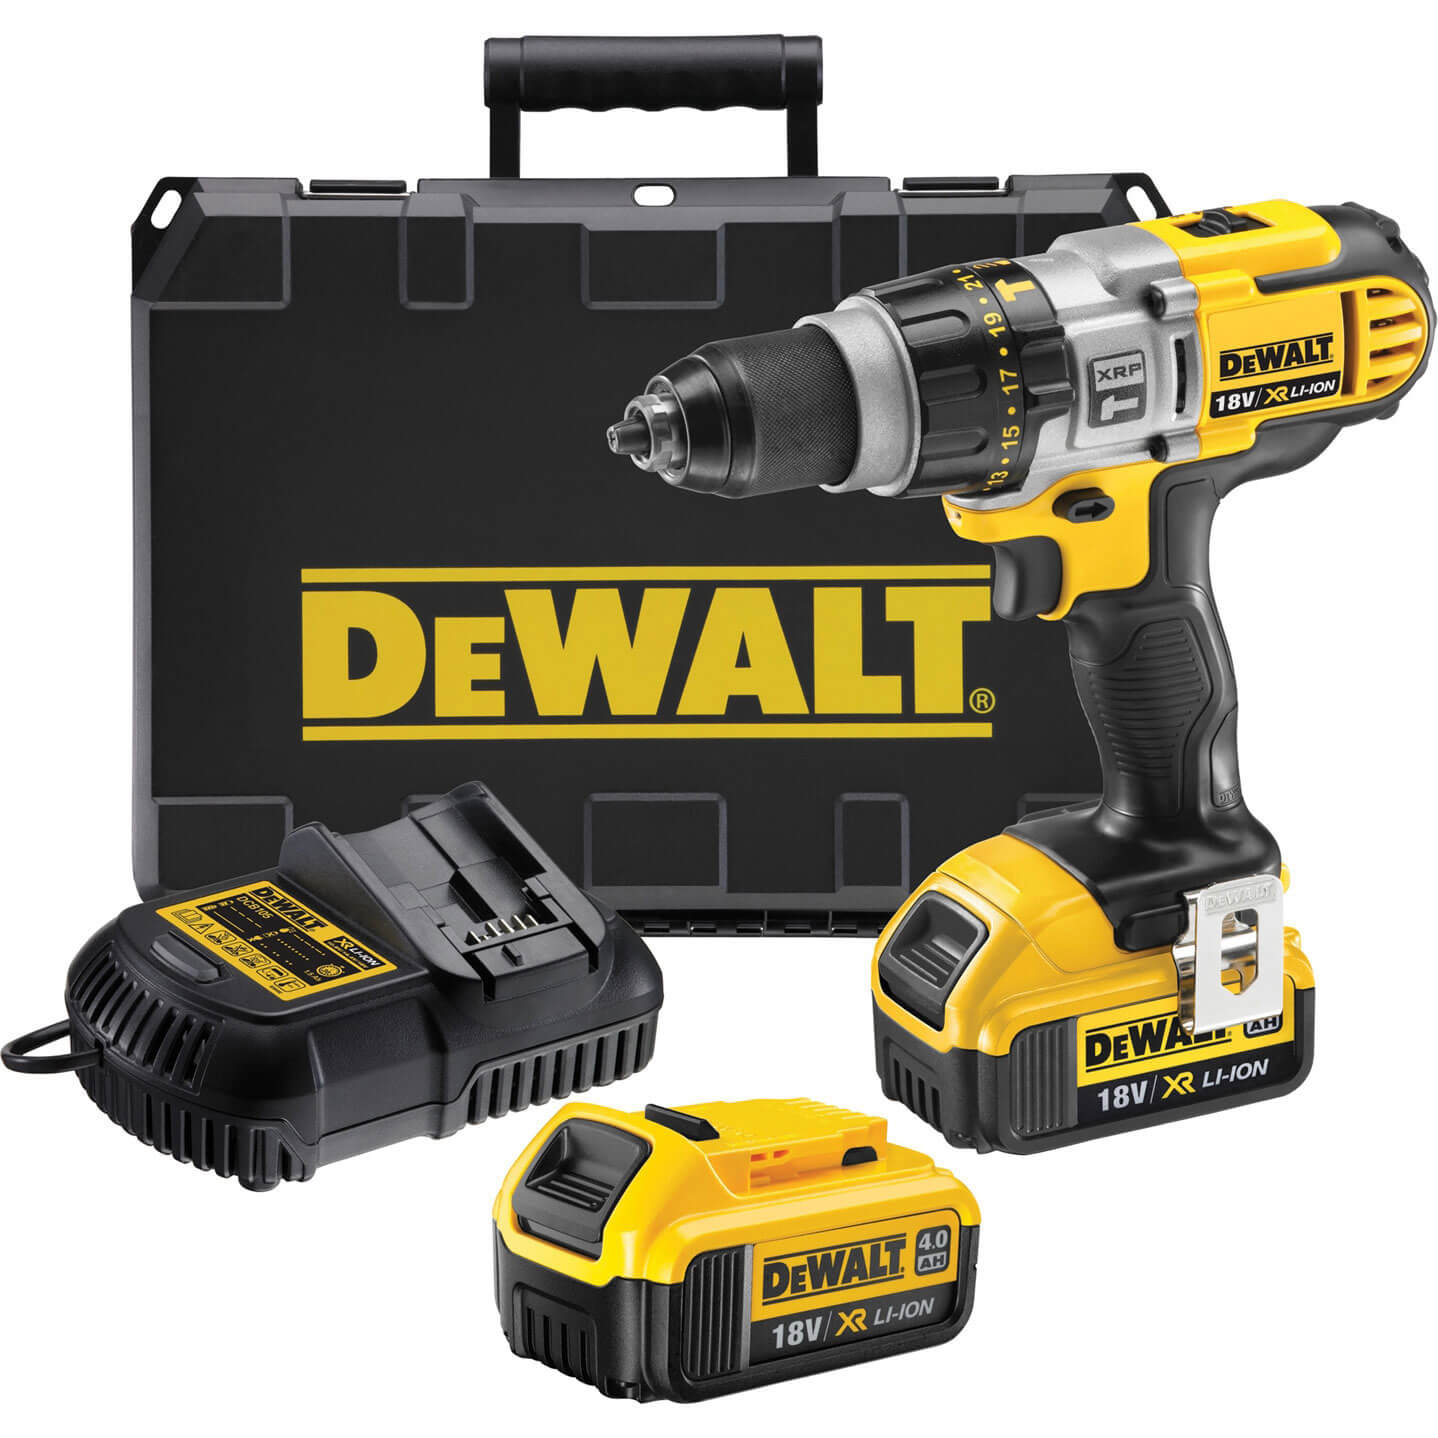 Image of DeWalt DCD985M2 18v Cordless XR Premium 3 Speed Combi Drill with 2 Lithium Ion Batteries 4ah